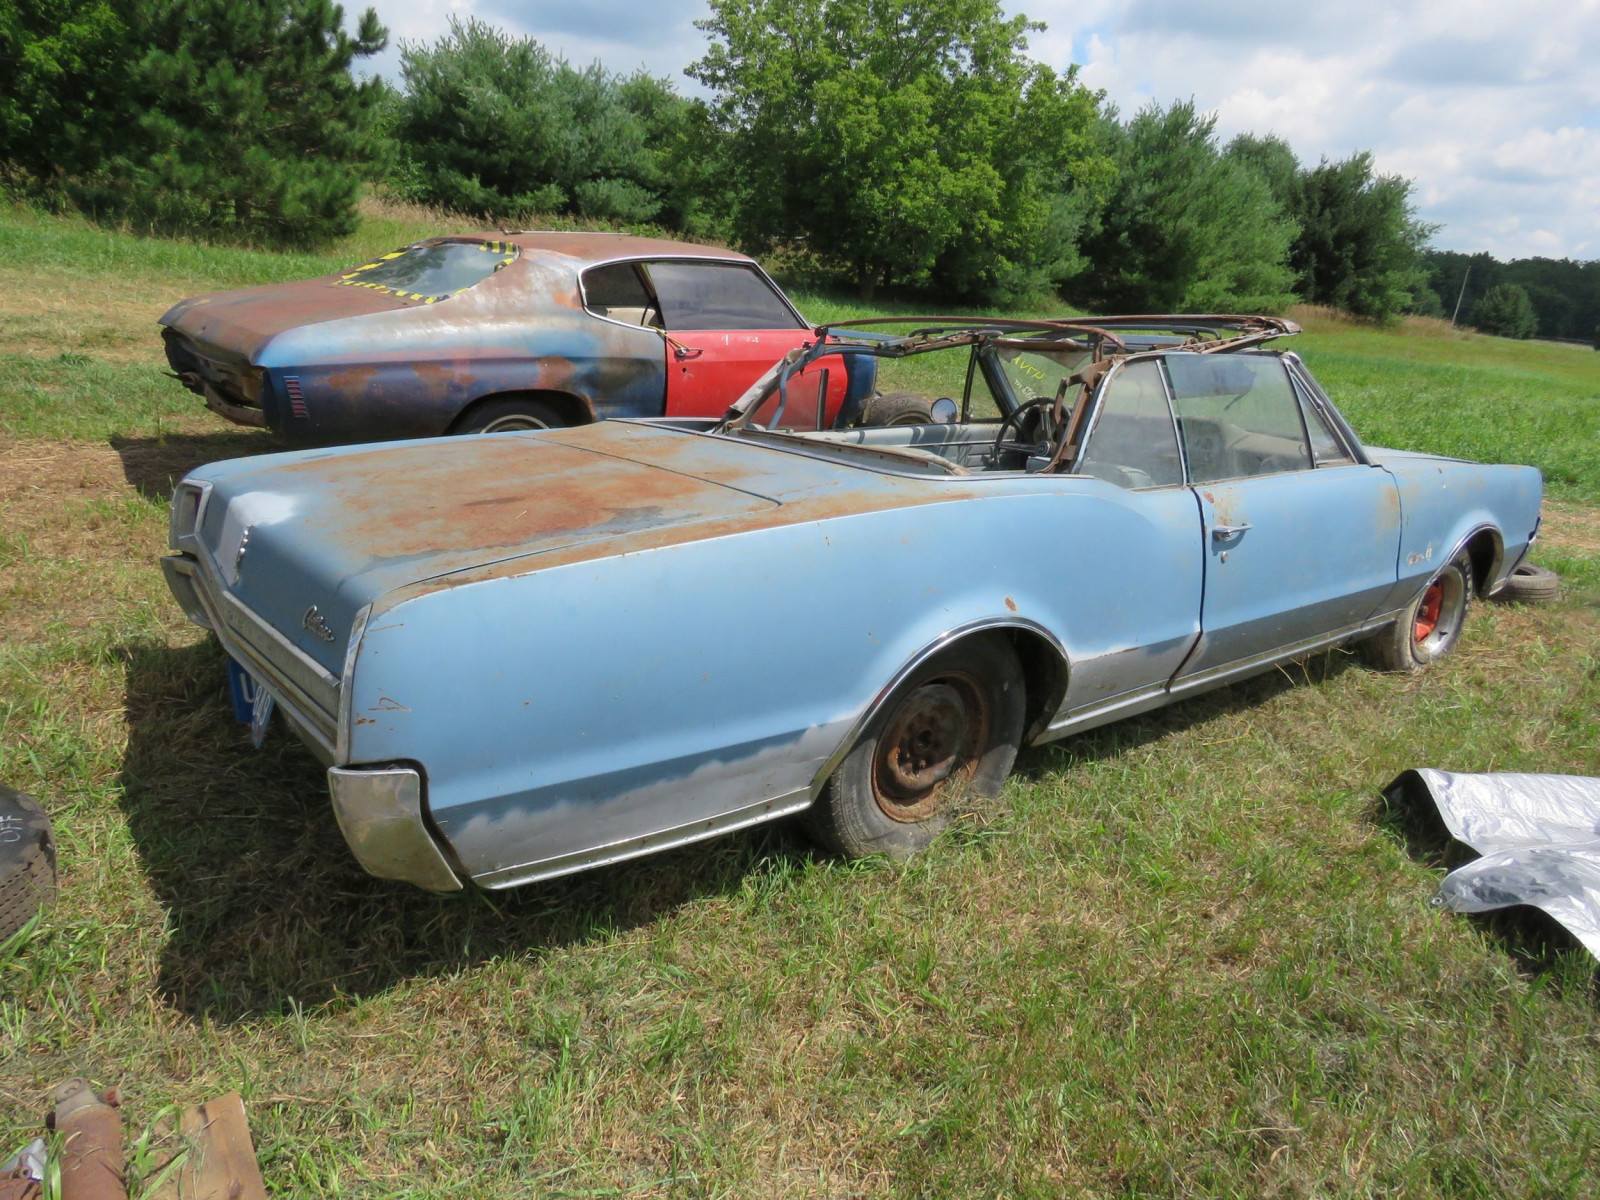 1967 Oldsmobile Cutlas Convertible Parts Car - Image 4